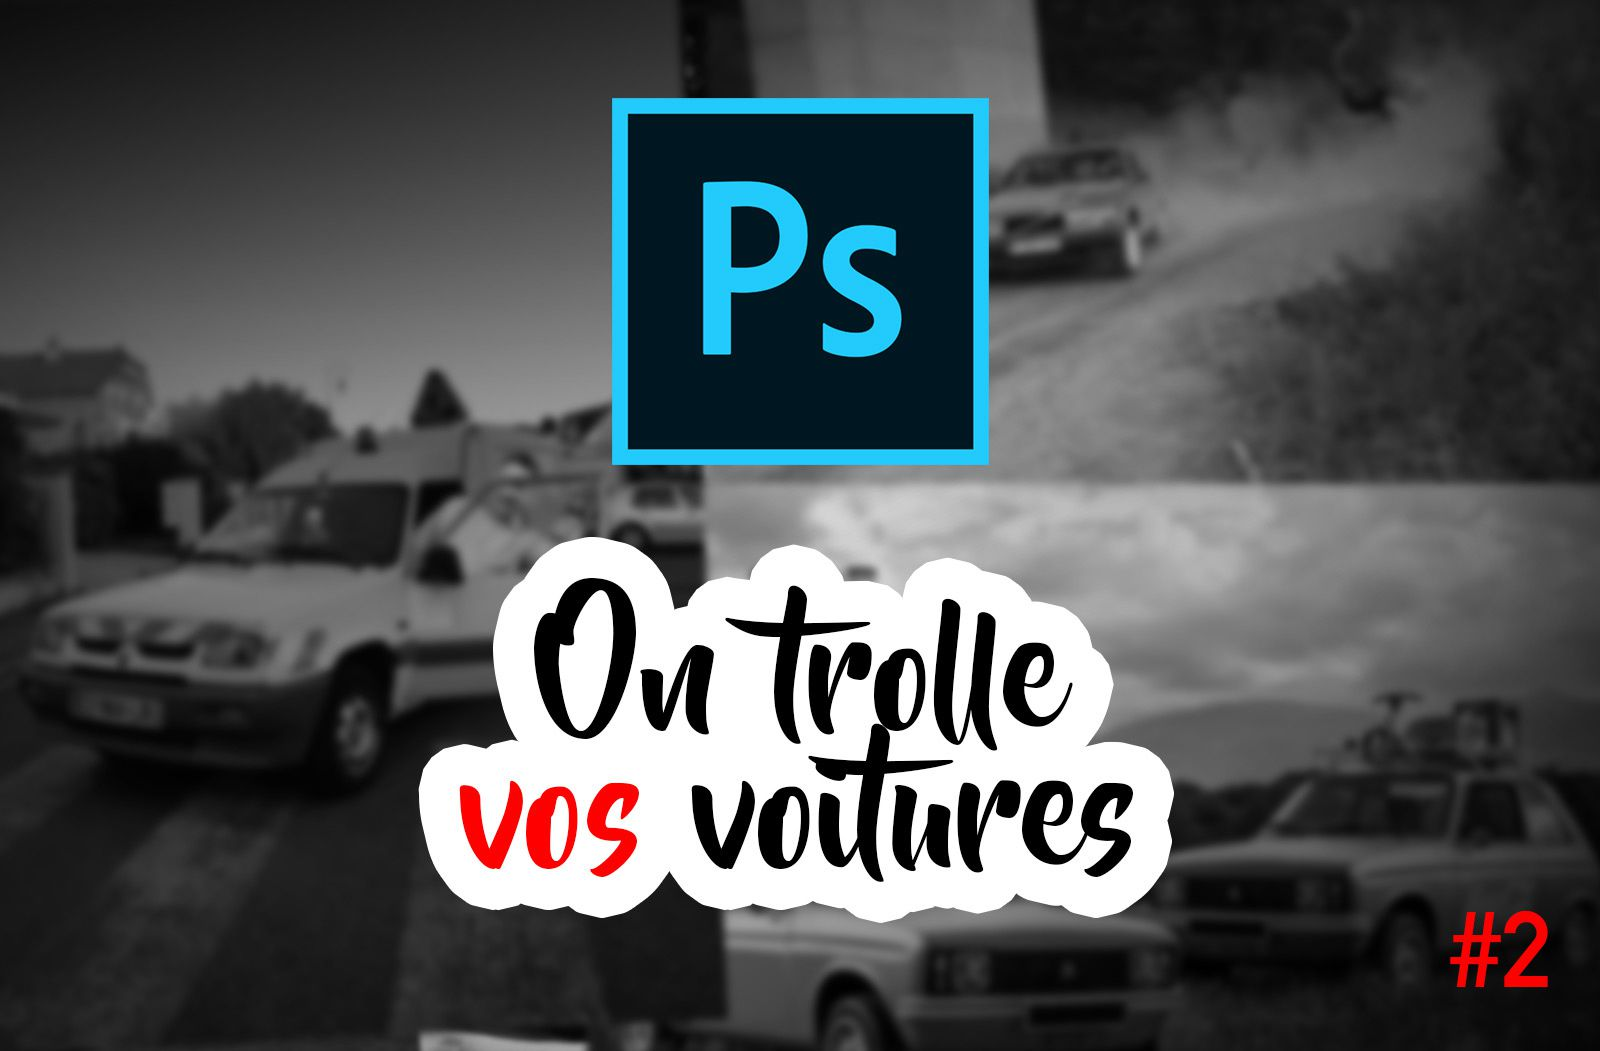 On a touché à vos voitures #photoshop : épisode 2